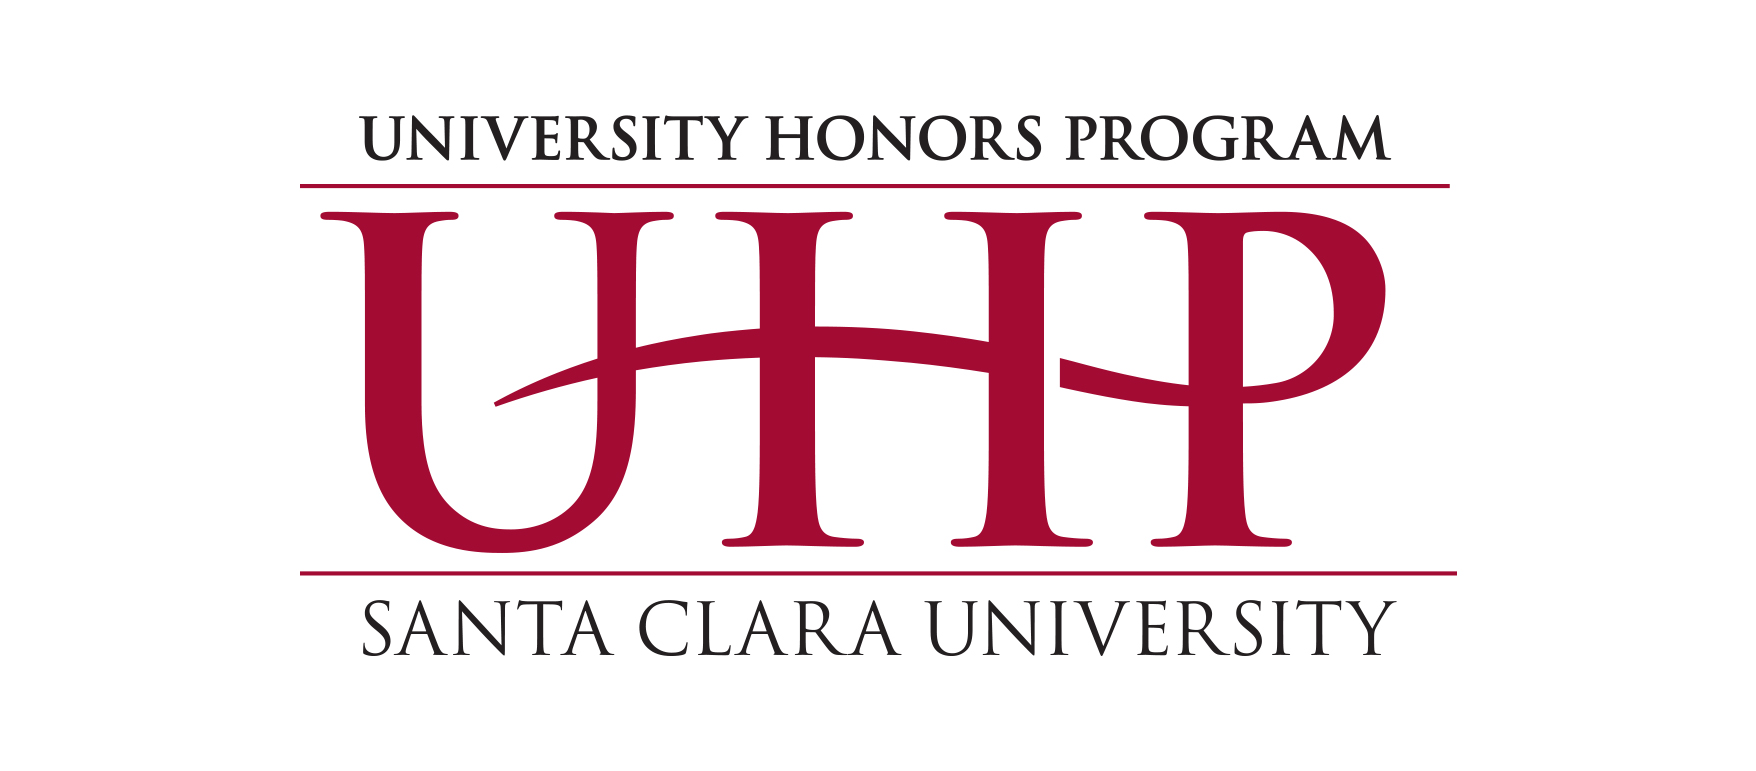 University Honors Program Logo